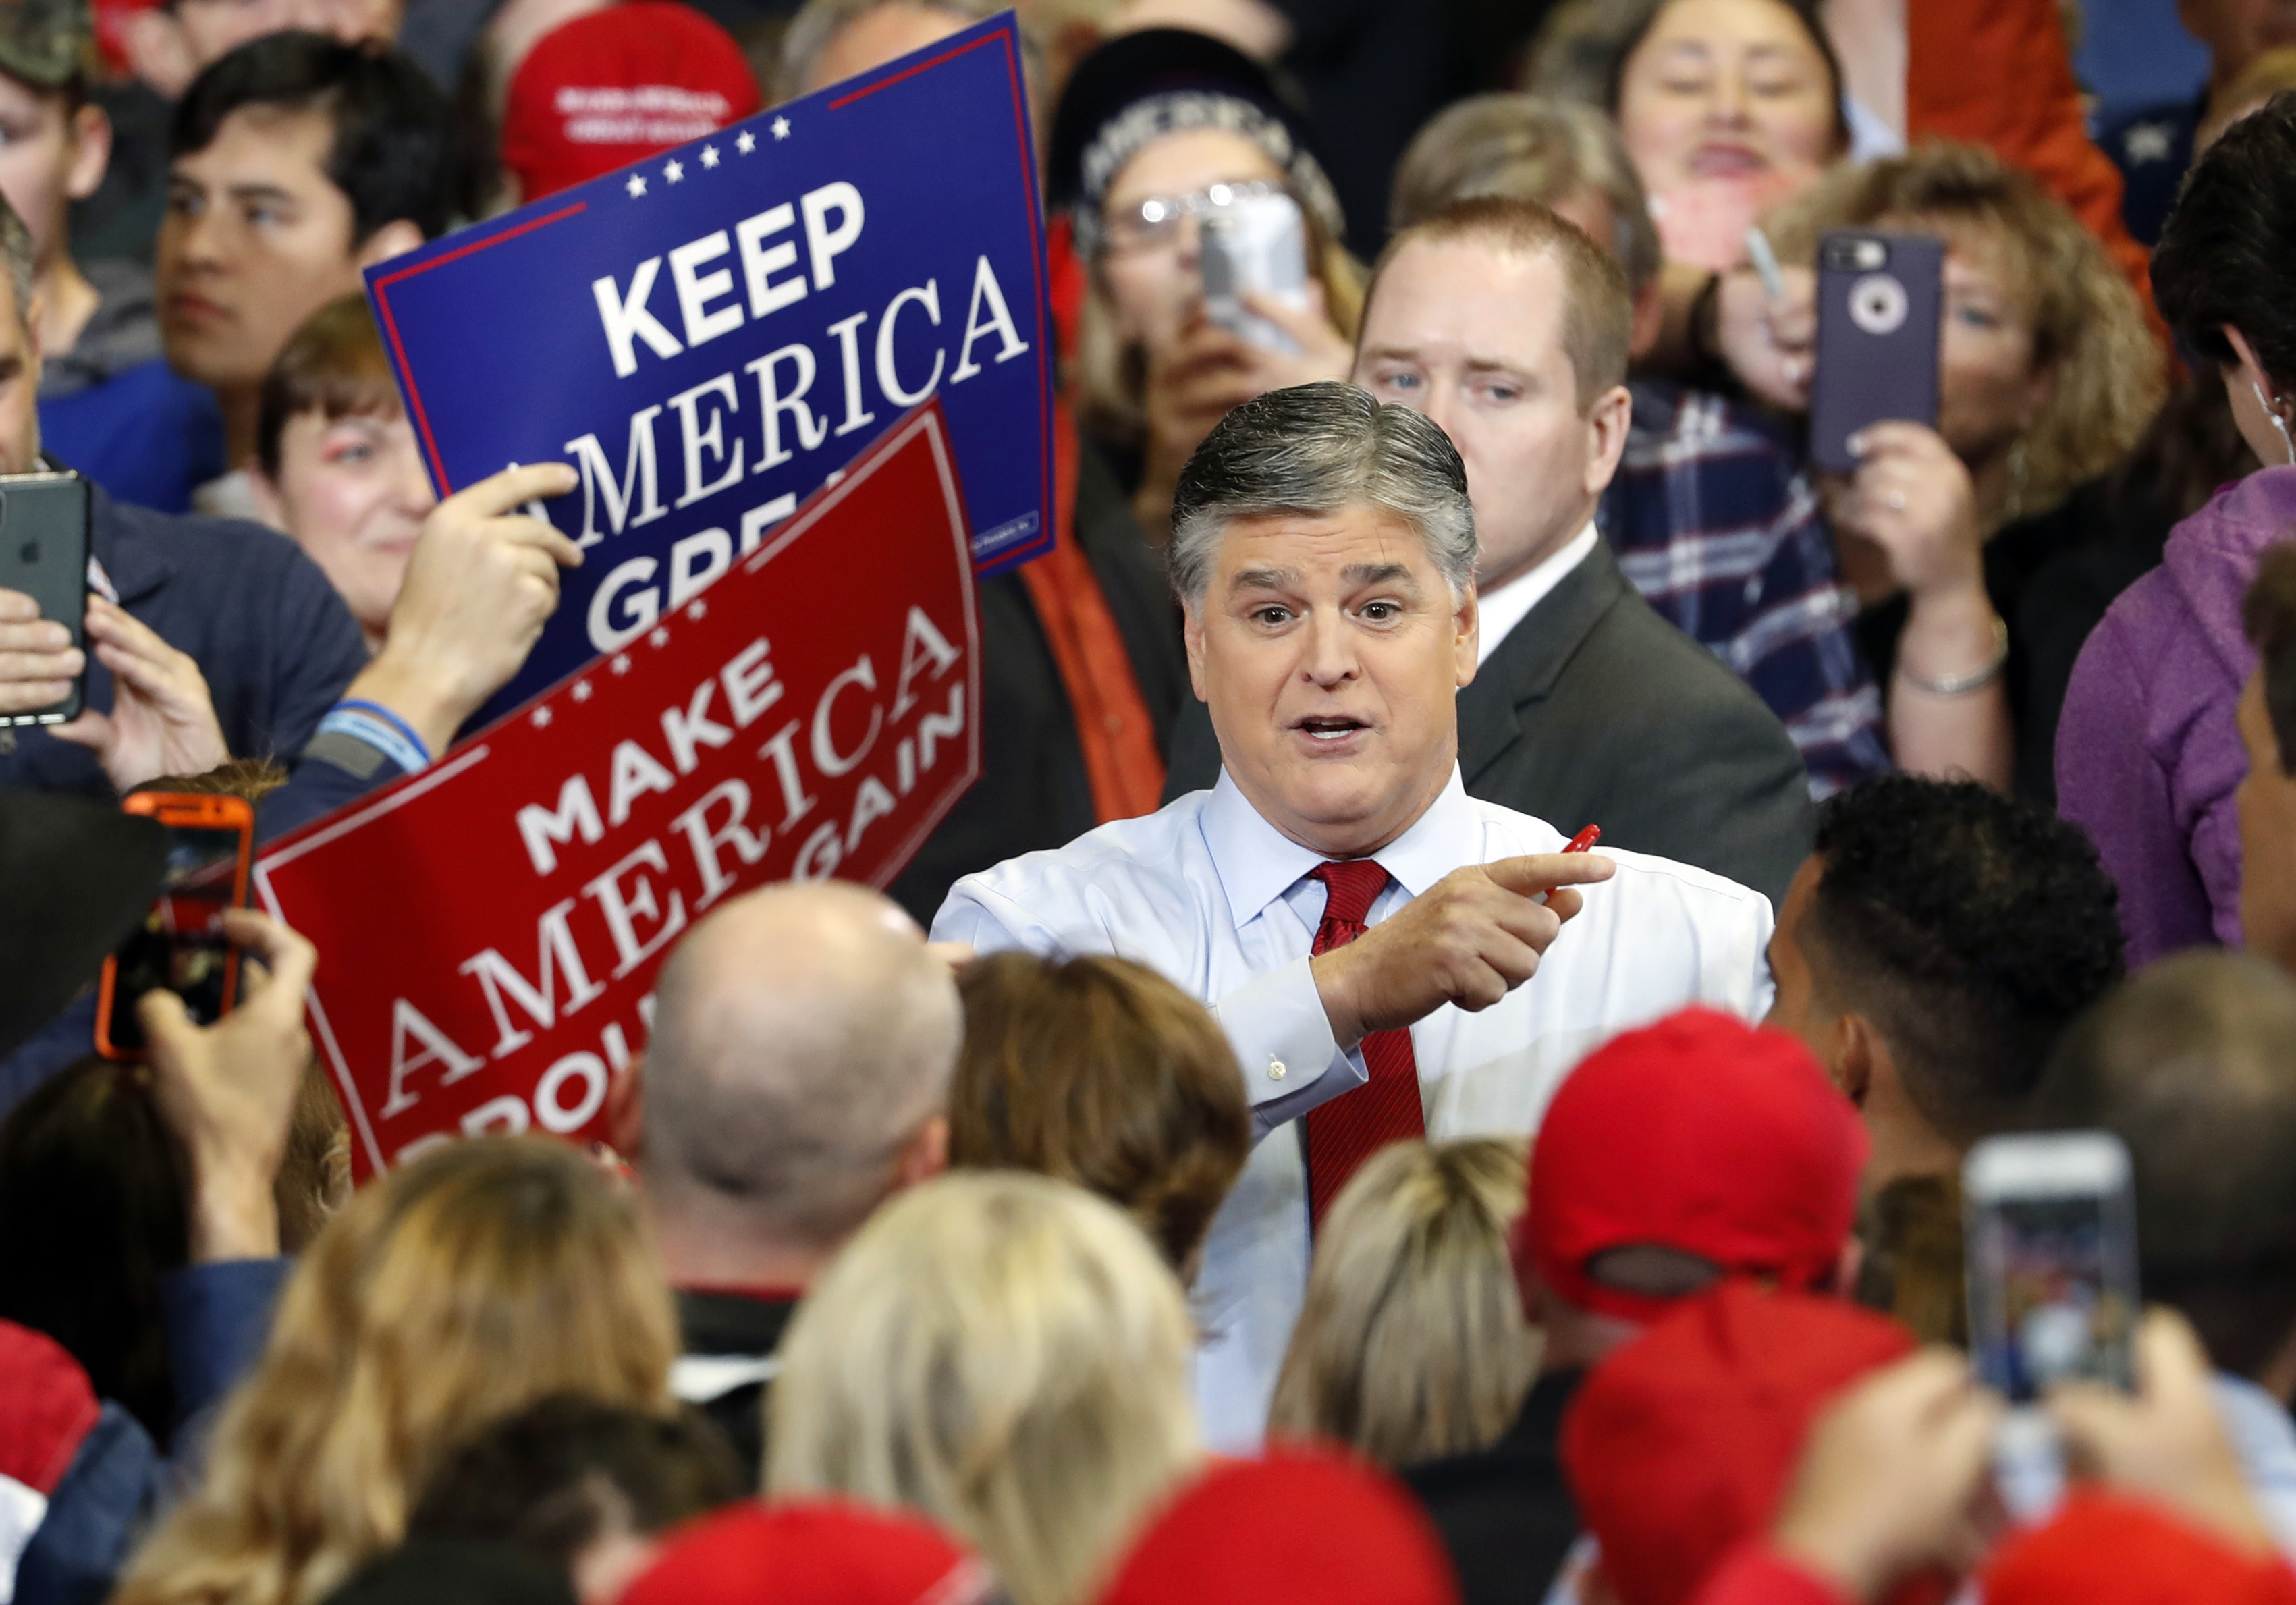 Television personality Sean Hannity speaks to members of the audience while signing autographs before the start of a campaign rally with President Donald Trump in Cape Girardeau, Mo., Nov. 5, 2018.